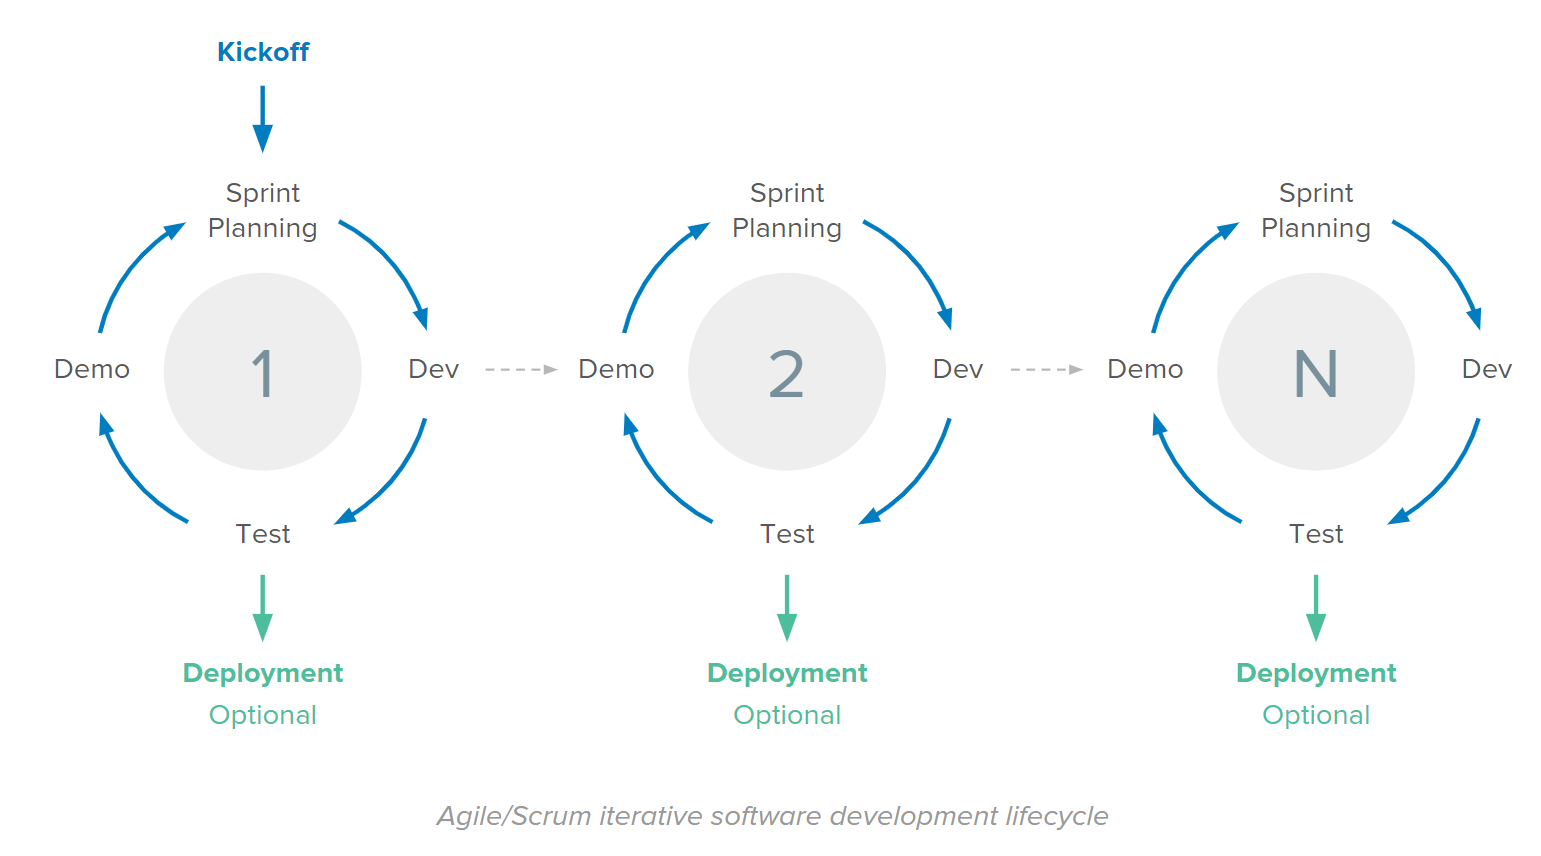 Agile/Scrum iterative software development lifecycle.